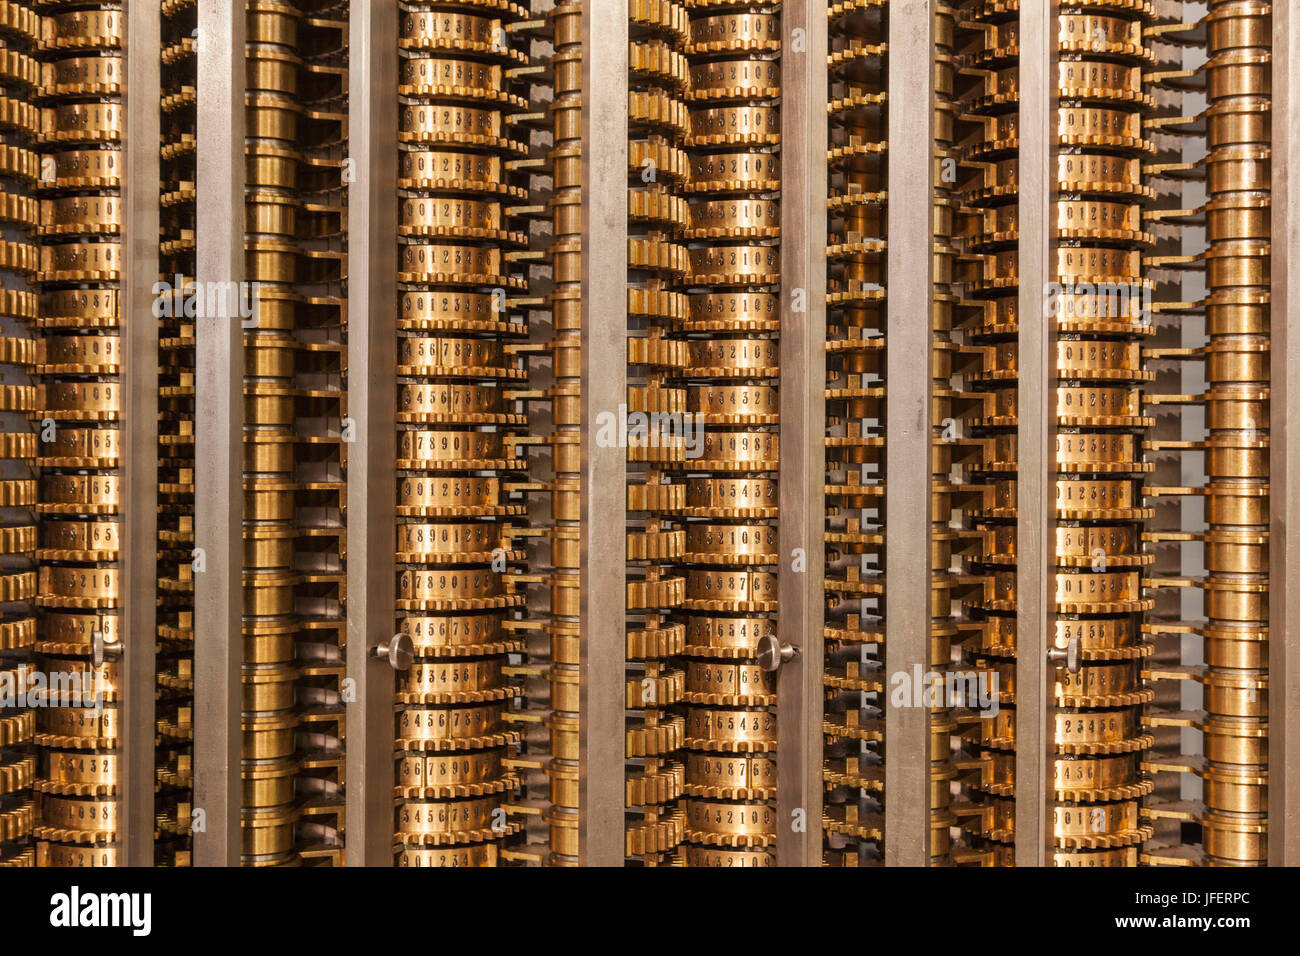 England, London, Kensington, The Science Museum, Detail of Charles Babbage's Difference Engine No.2 - Stock Image